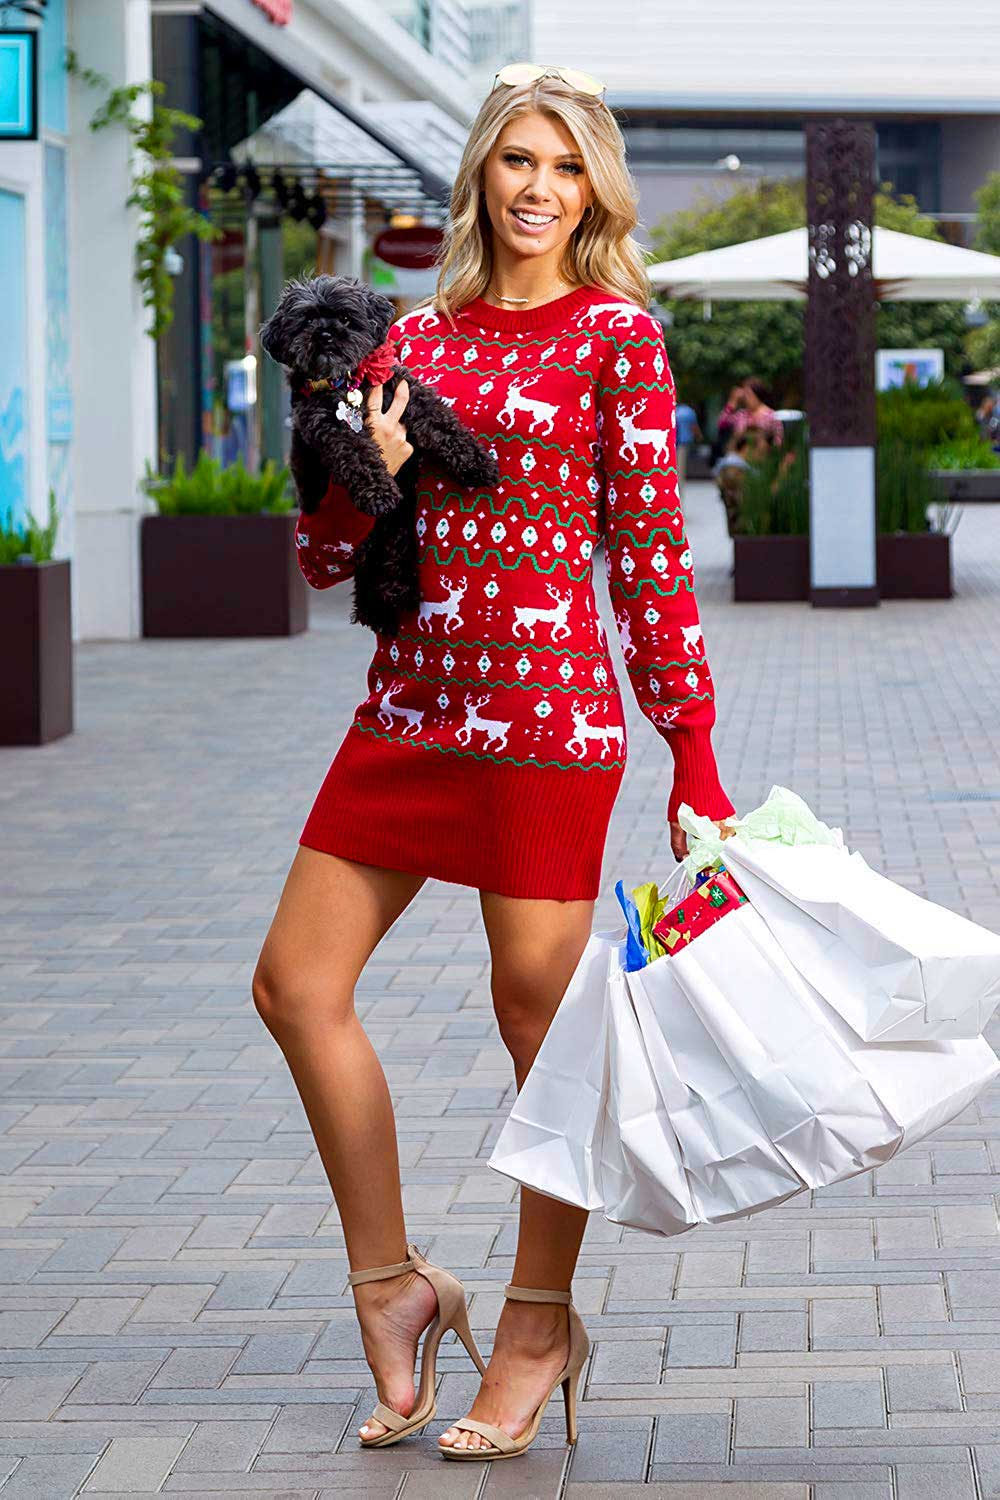 4 Cute Holiday Dress Ideas - What To Wear To A Holiday Party - Christmas Reindeer Sweater Dress 1